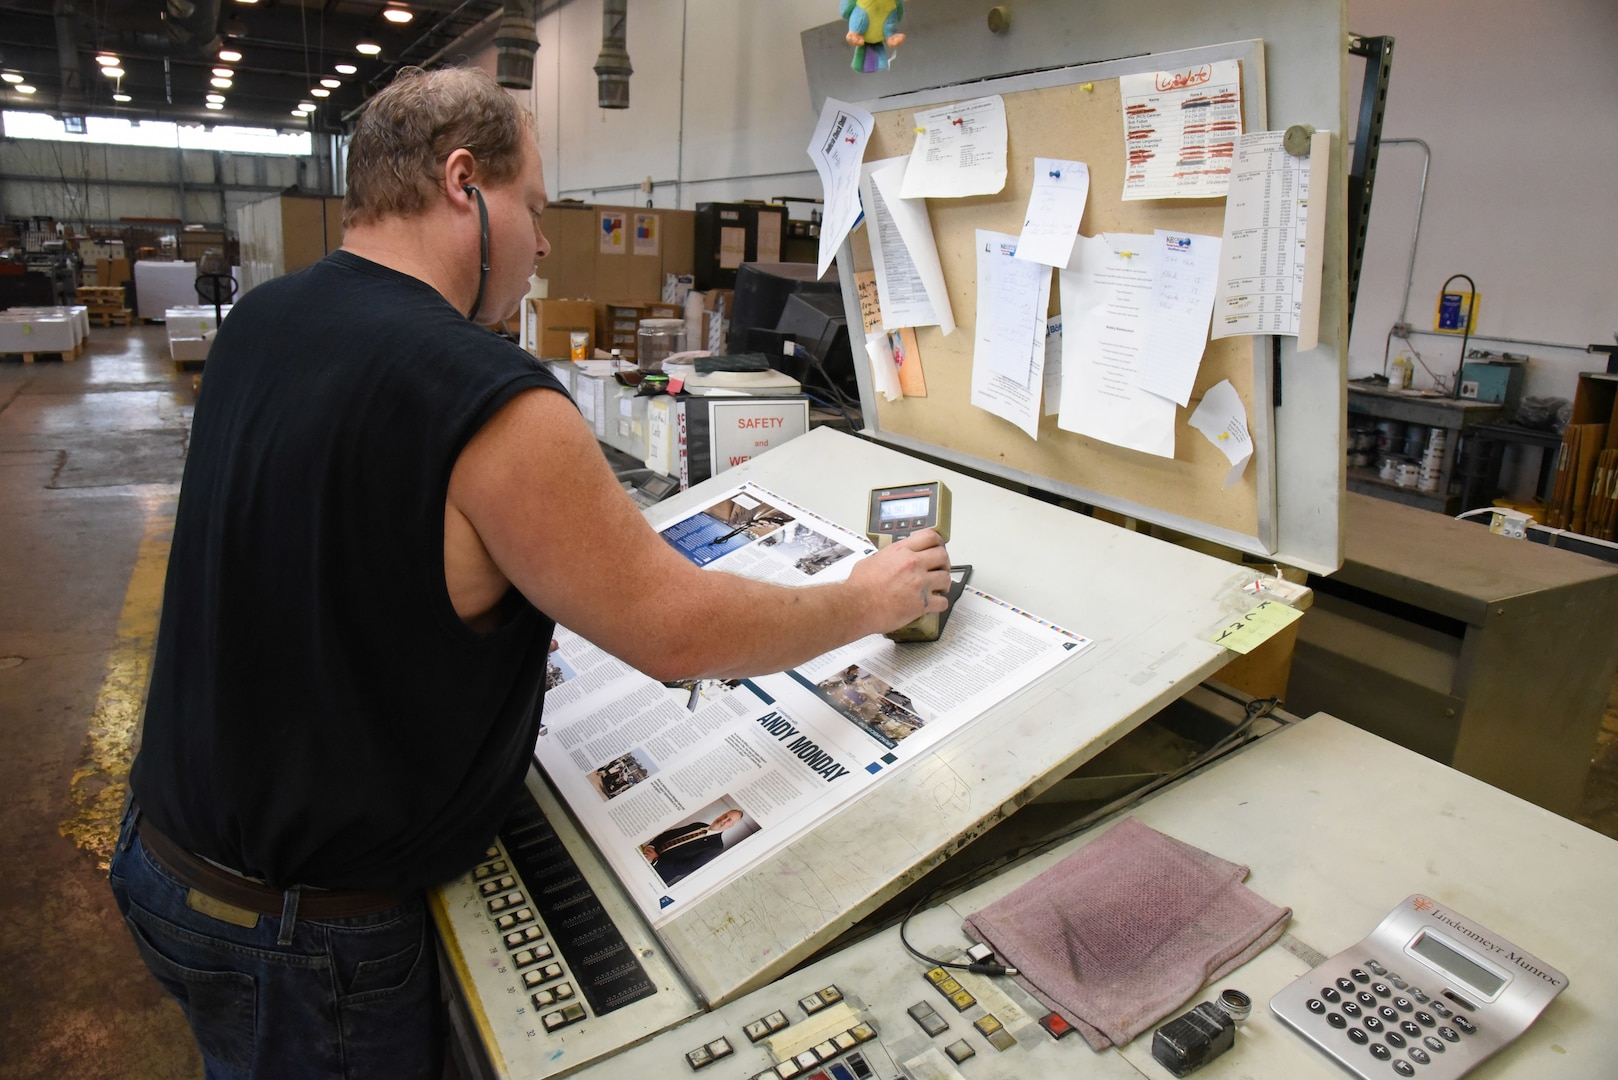 Everett E. (Skip) Craig Jr., press operator at KB Offset Printing Inc. in State College, Pennsylvania, measures the degree of darkness of the reflecting surface on a page of Loglines magazine during the final press run Aug. 26. The magazine's print version ends with the September/October 2019 issue. Photo by Phil Prater